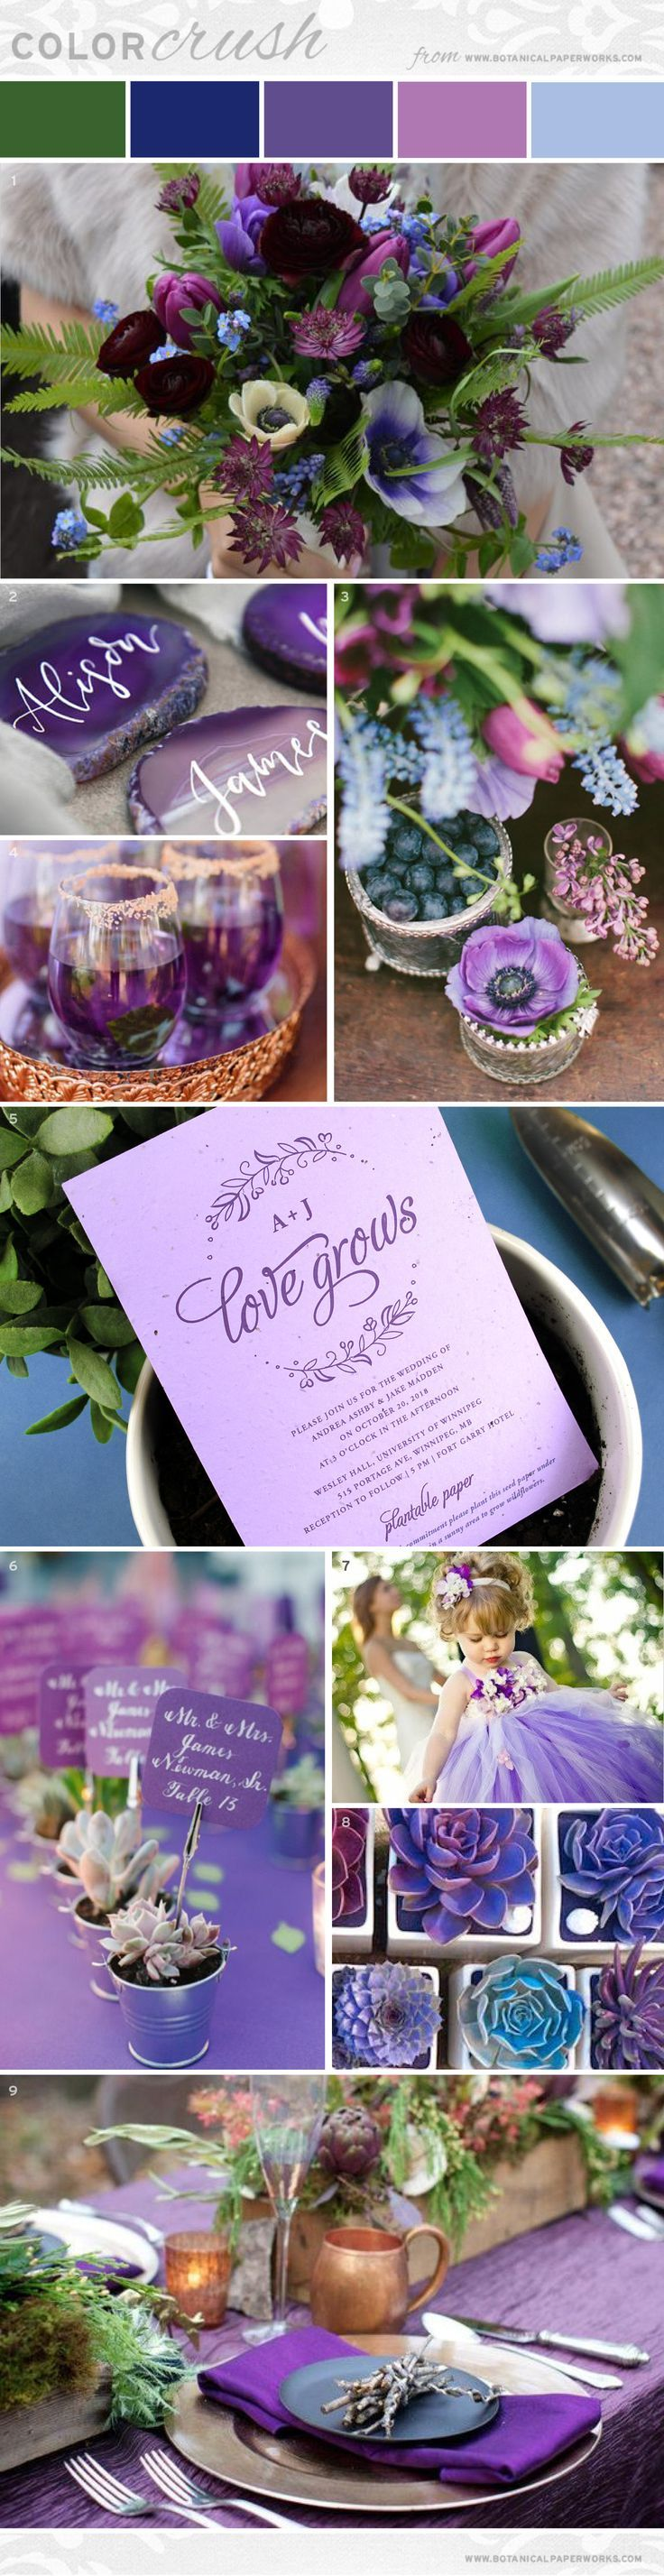 Ultra Violet is Pantone's Color of the Year for 2018 and is sure to be a hit for wedding season. Take a look at this imaginative palette pairing it with lilac, cool blues & rose gold accents.